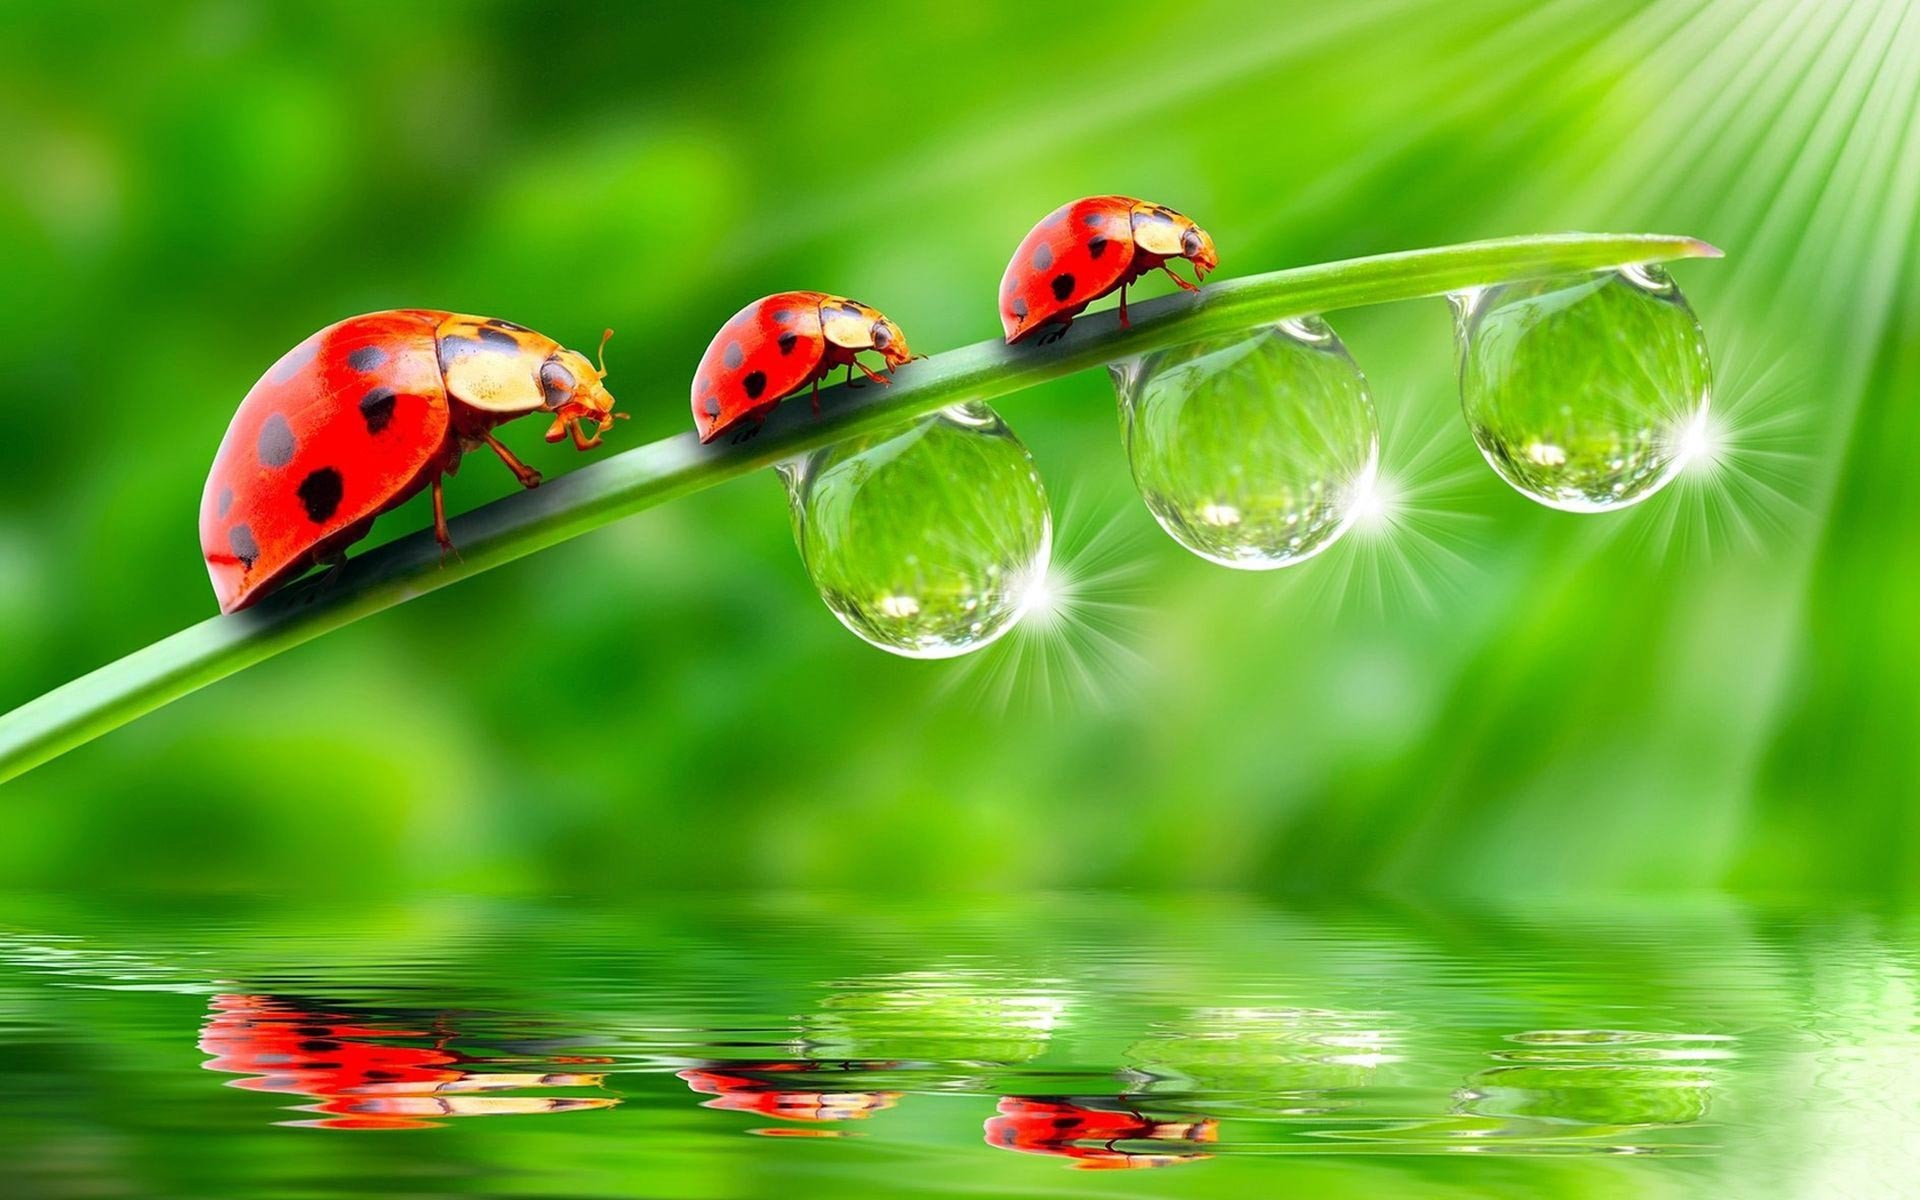 1920x1200 Cute Ladybug Wallpaper High Quality Resolution for Background